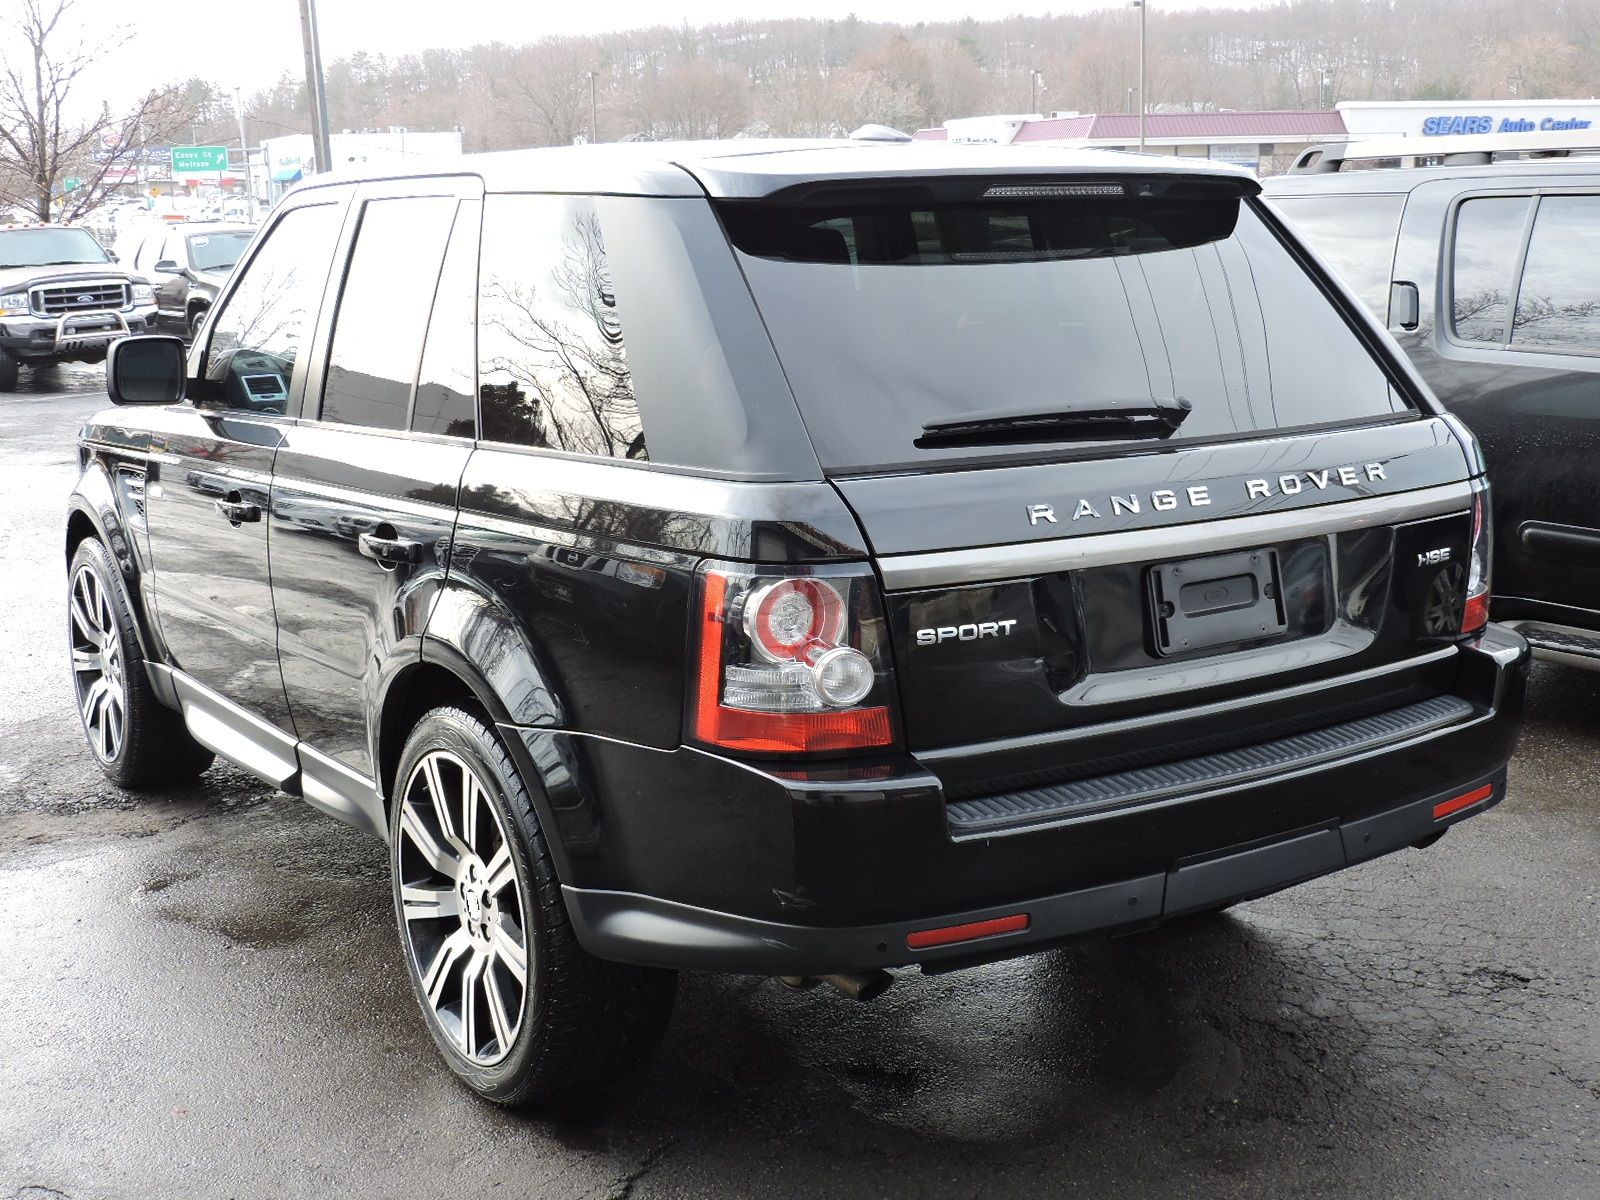 http://saugusautomall.com/uimages/vehicle/3707175/full/2012-Land-Rover-Range-Rover-Sport-HSE-SALSF2D47CA757856-3602.jpeg